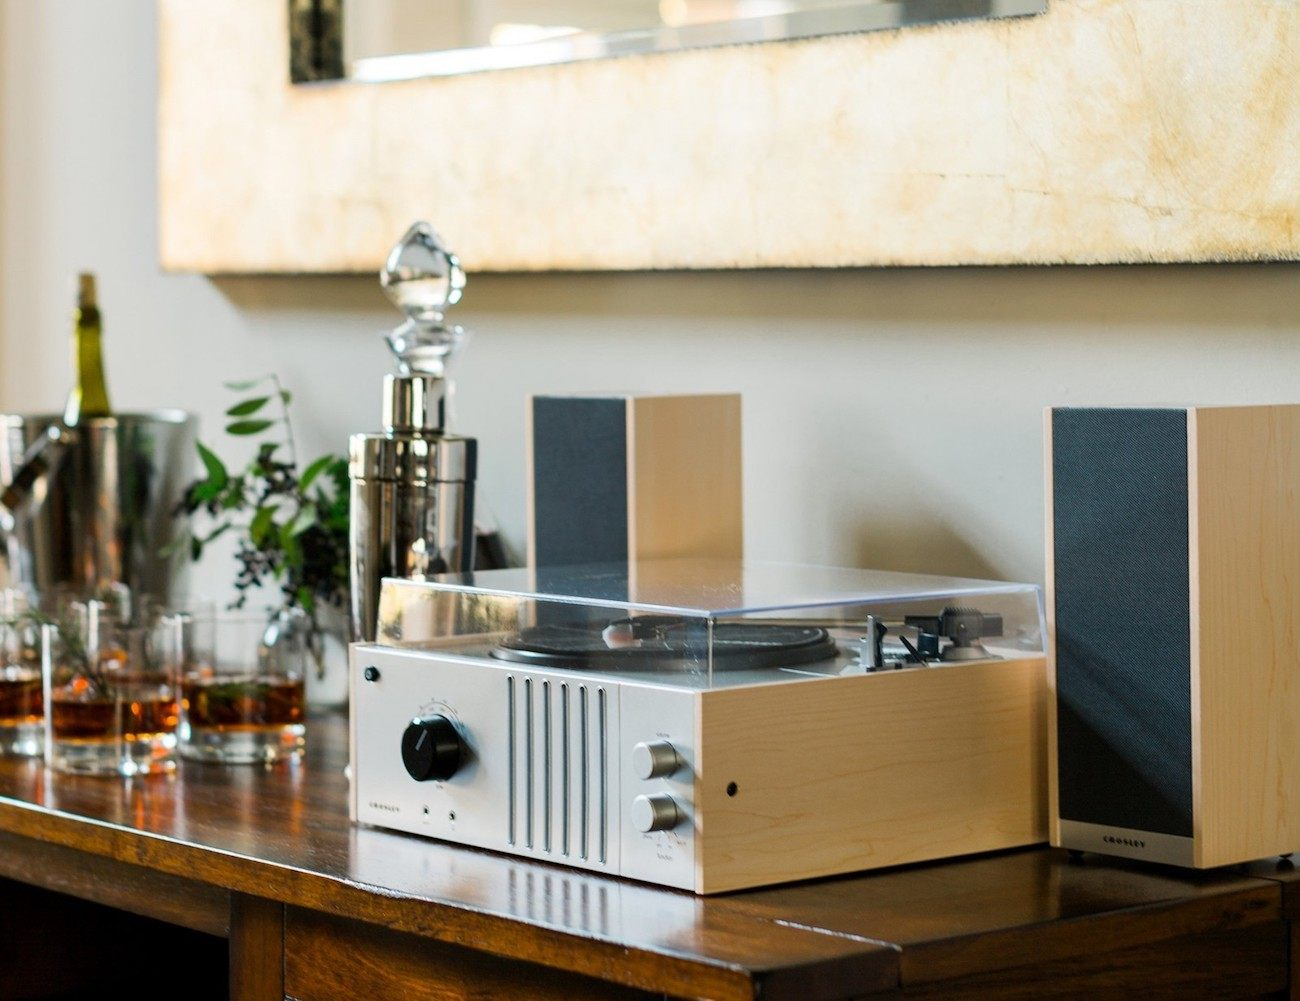 Crosley Player Turntable Shelf System